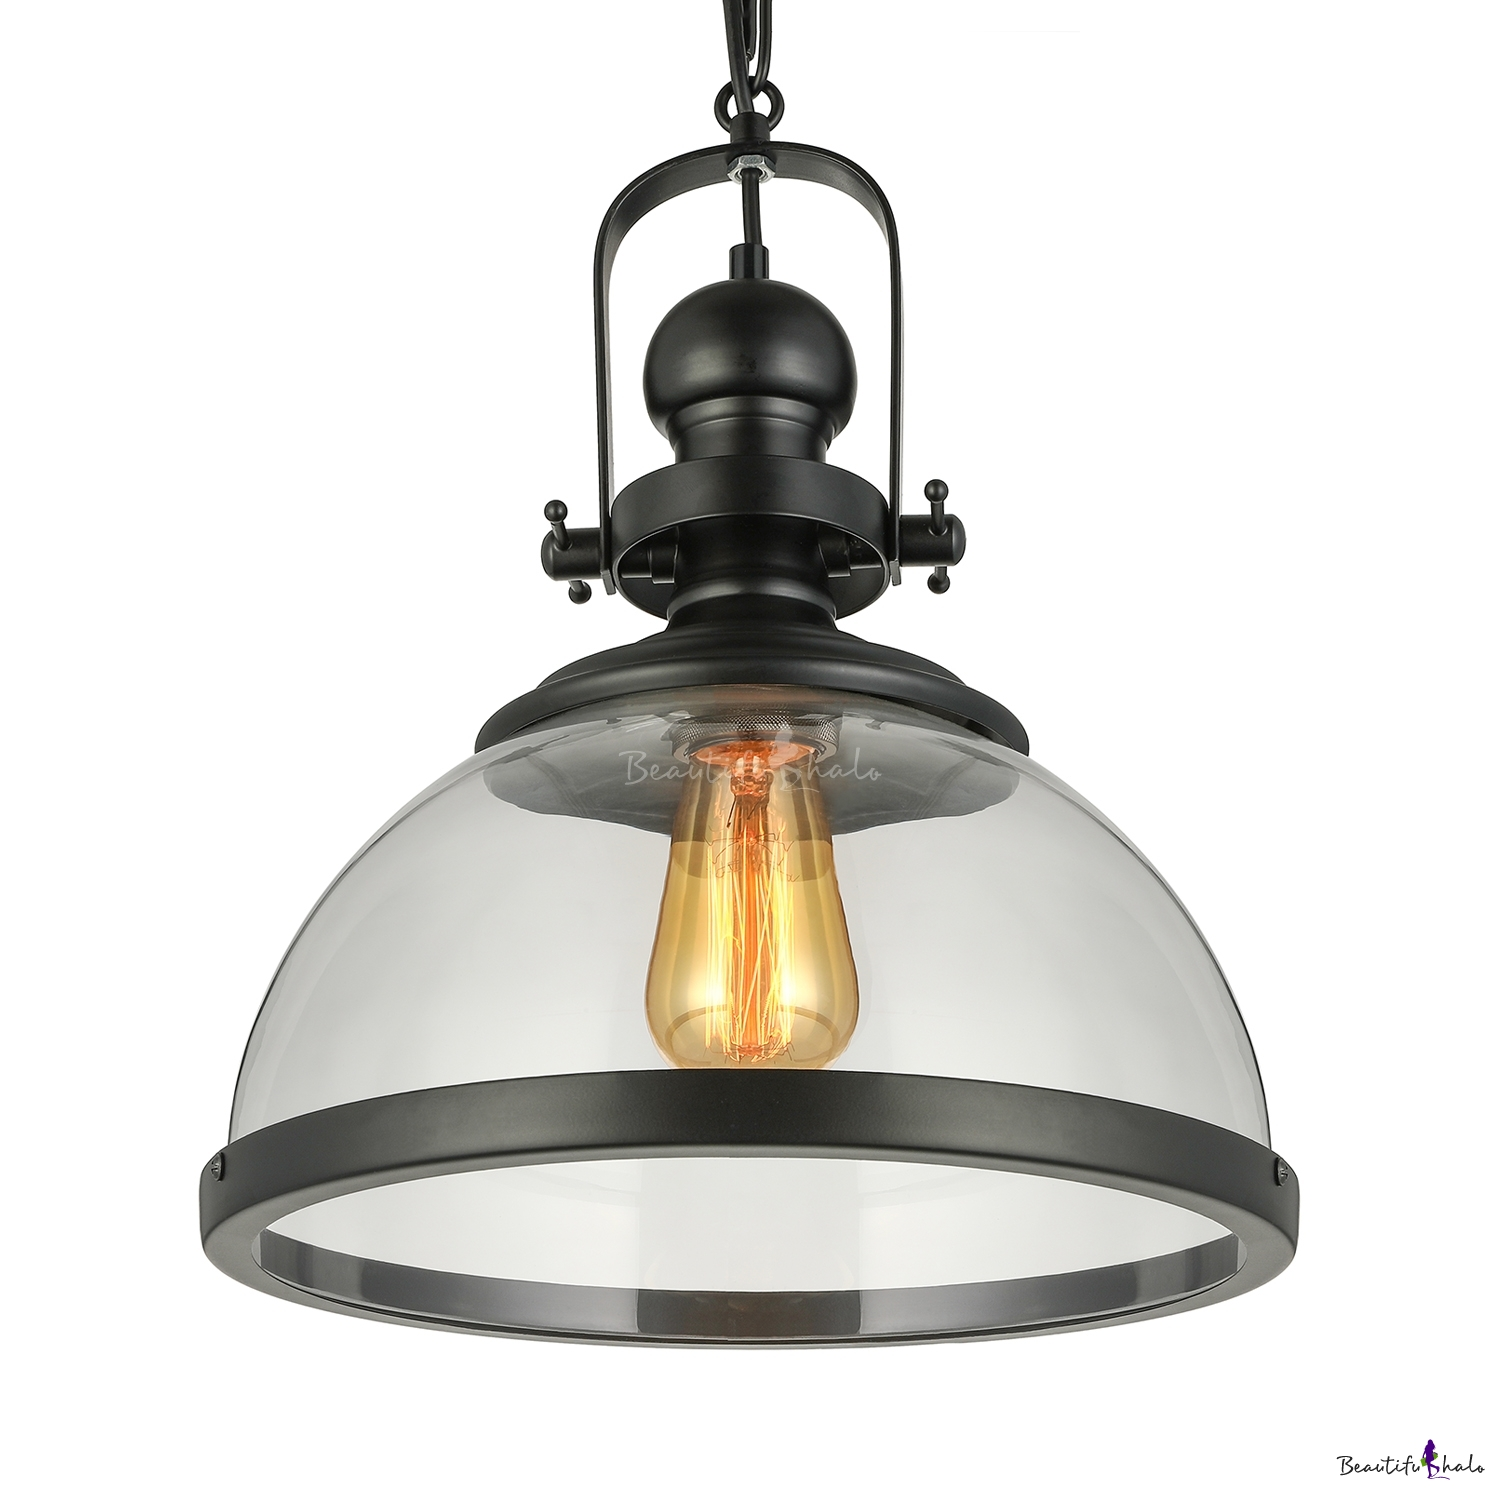 Glass Lamp Bowl Loft Style Bowl Hanging Lamp With Glass Shade Single Head Ceiling Pendant Light In Black Finish